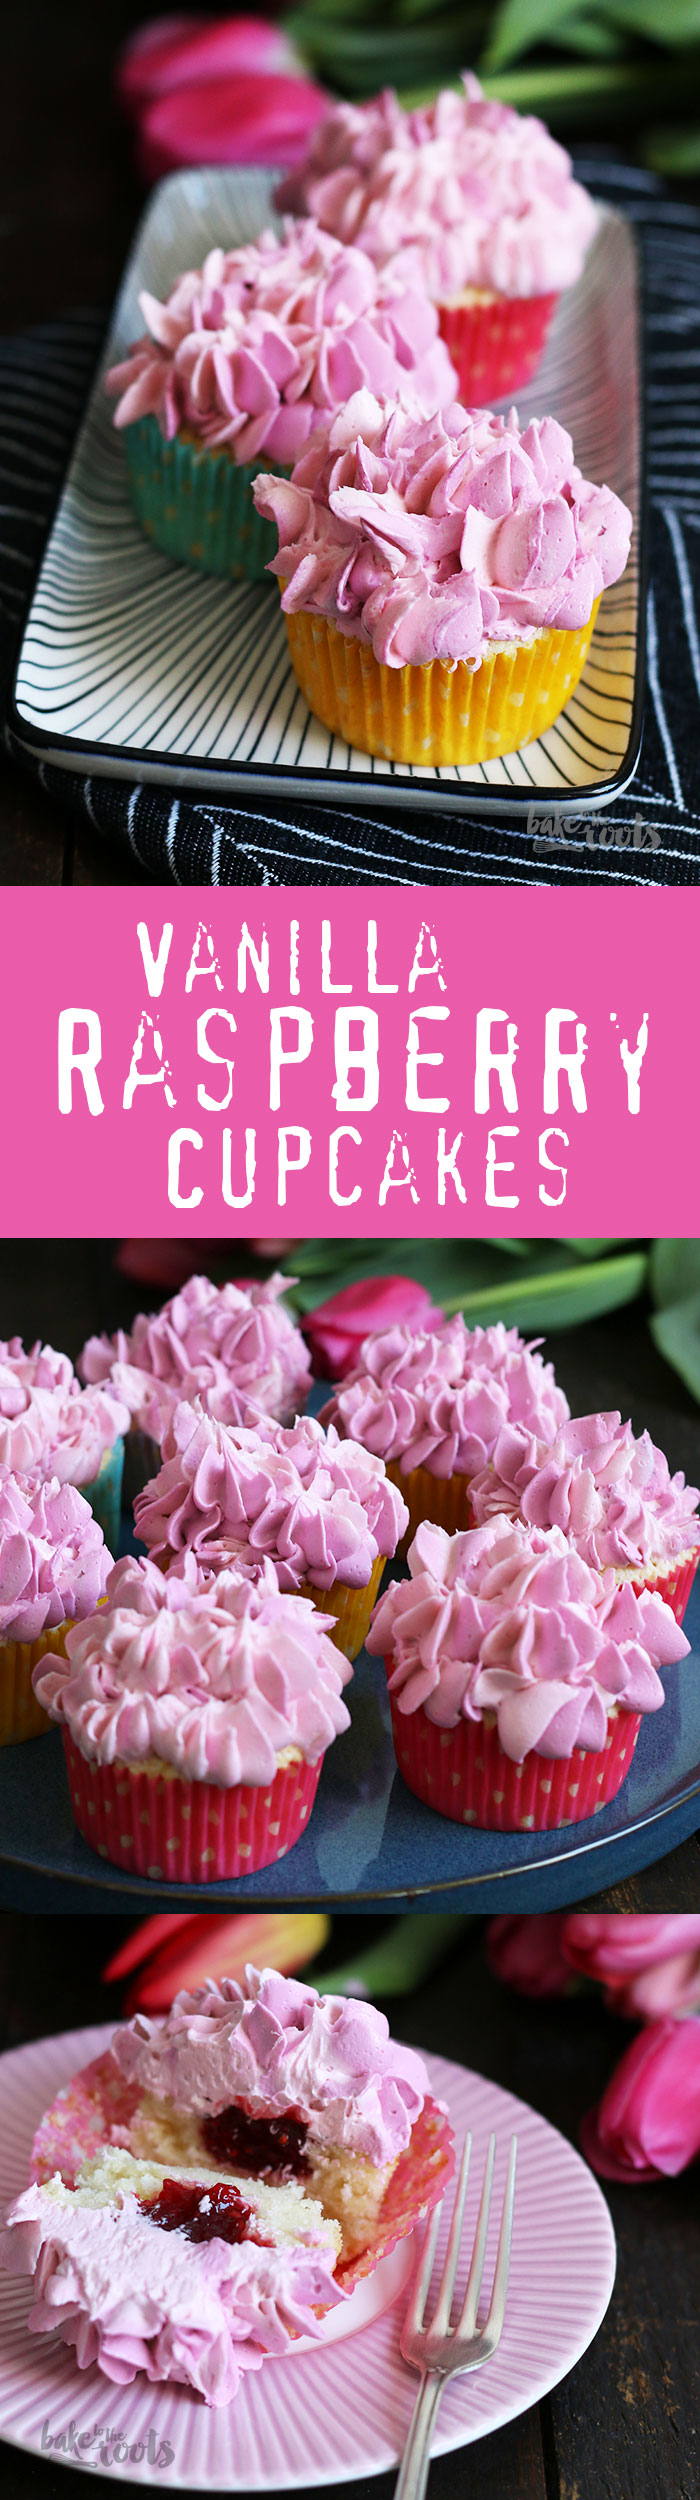 Delicious and Cute Vanilla Raspberry Cupcakes with a Swiss Meringue Buttercream | Bake to the roots